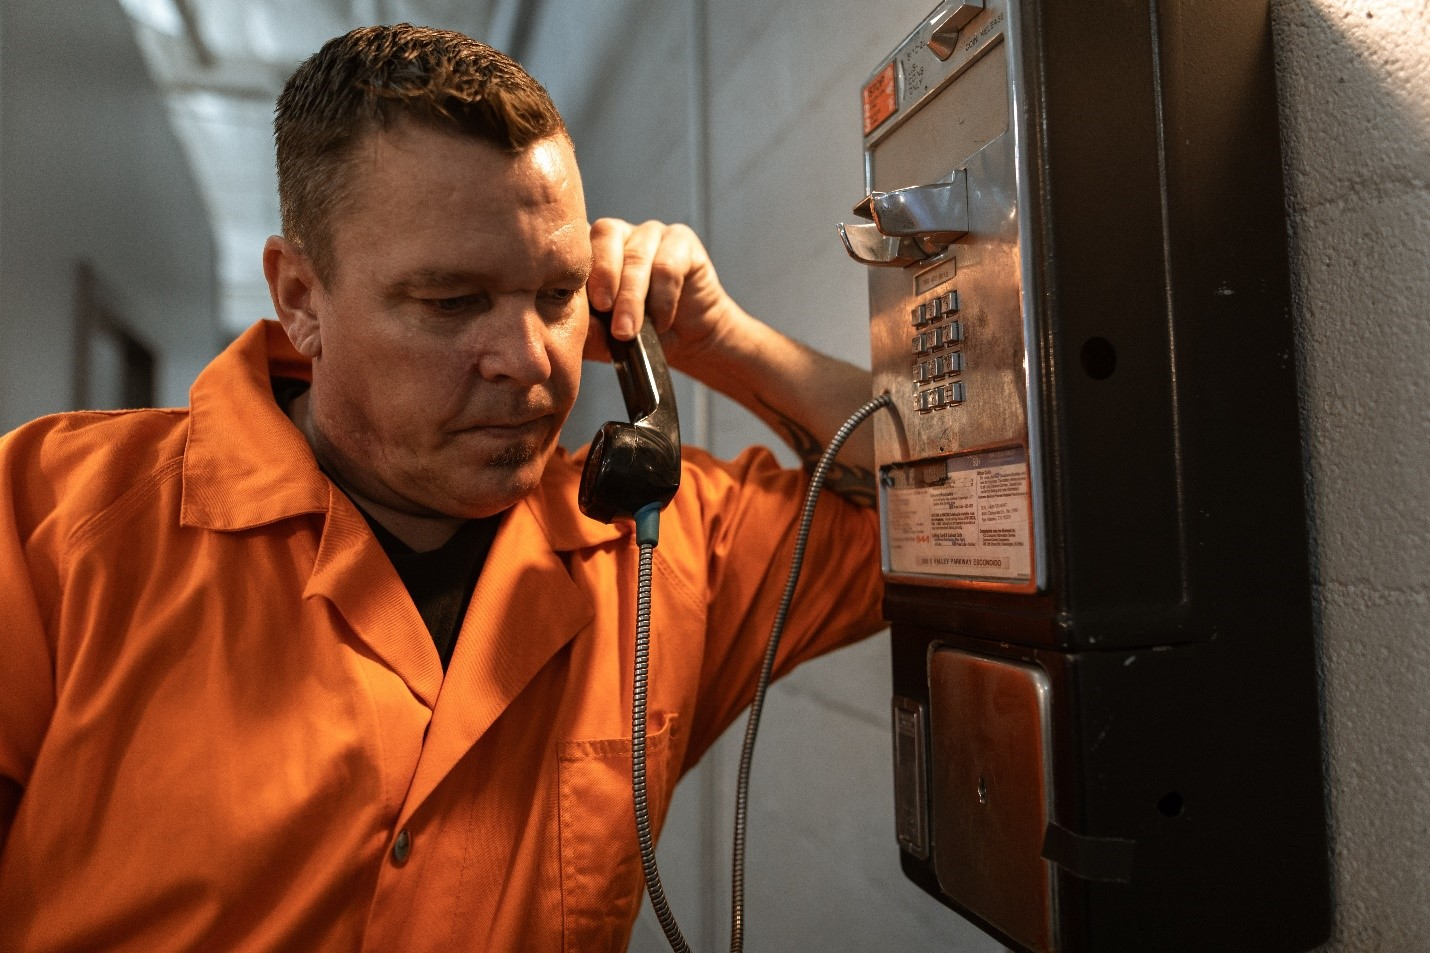 Man calling his friend from a payphone in prison